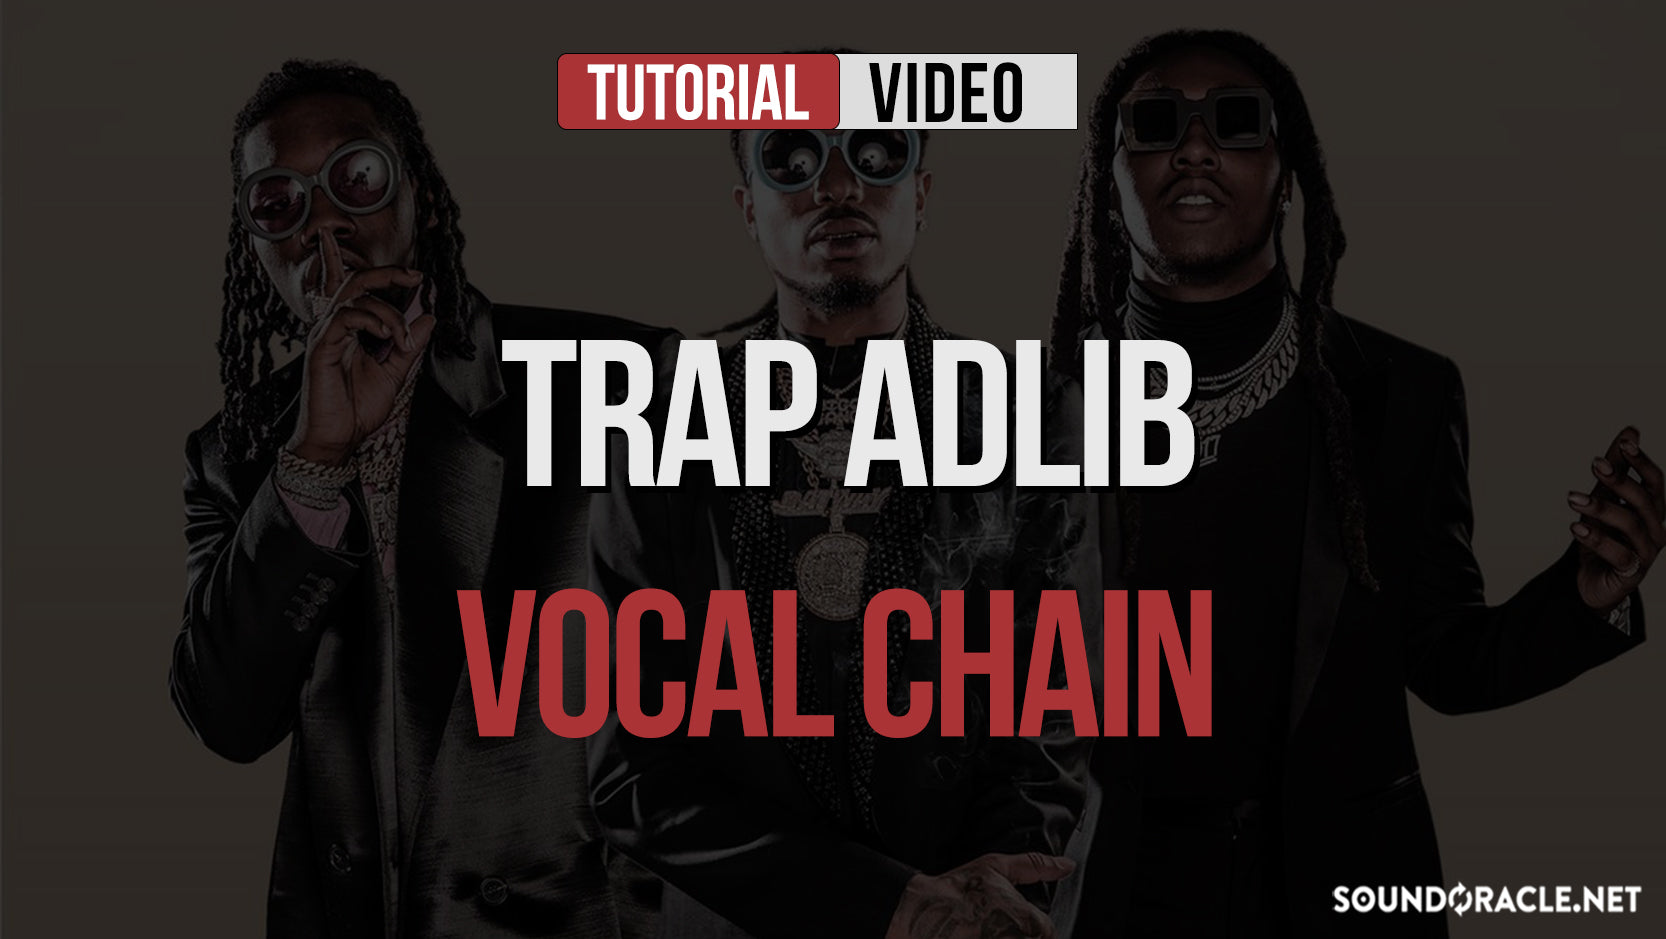 Trap Adlib Vocal Chain